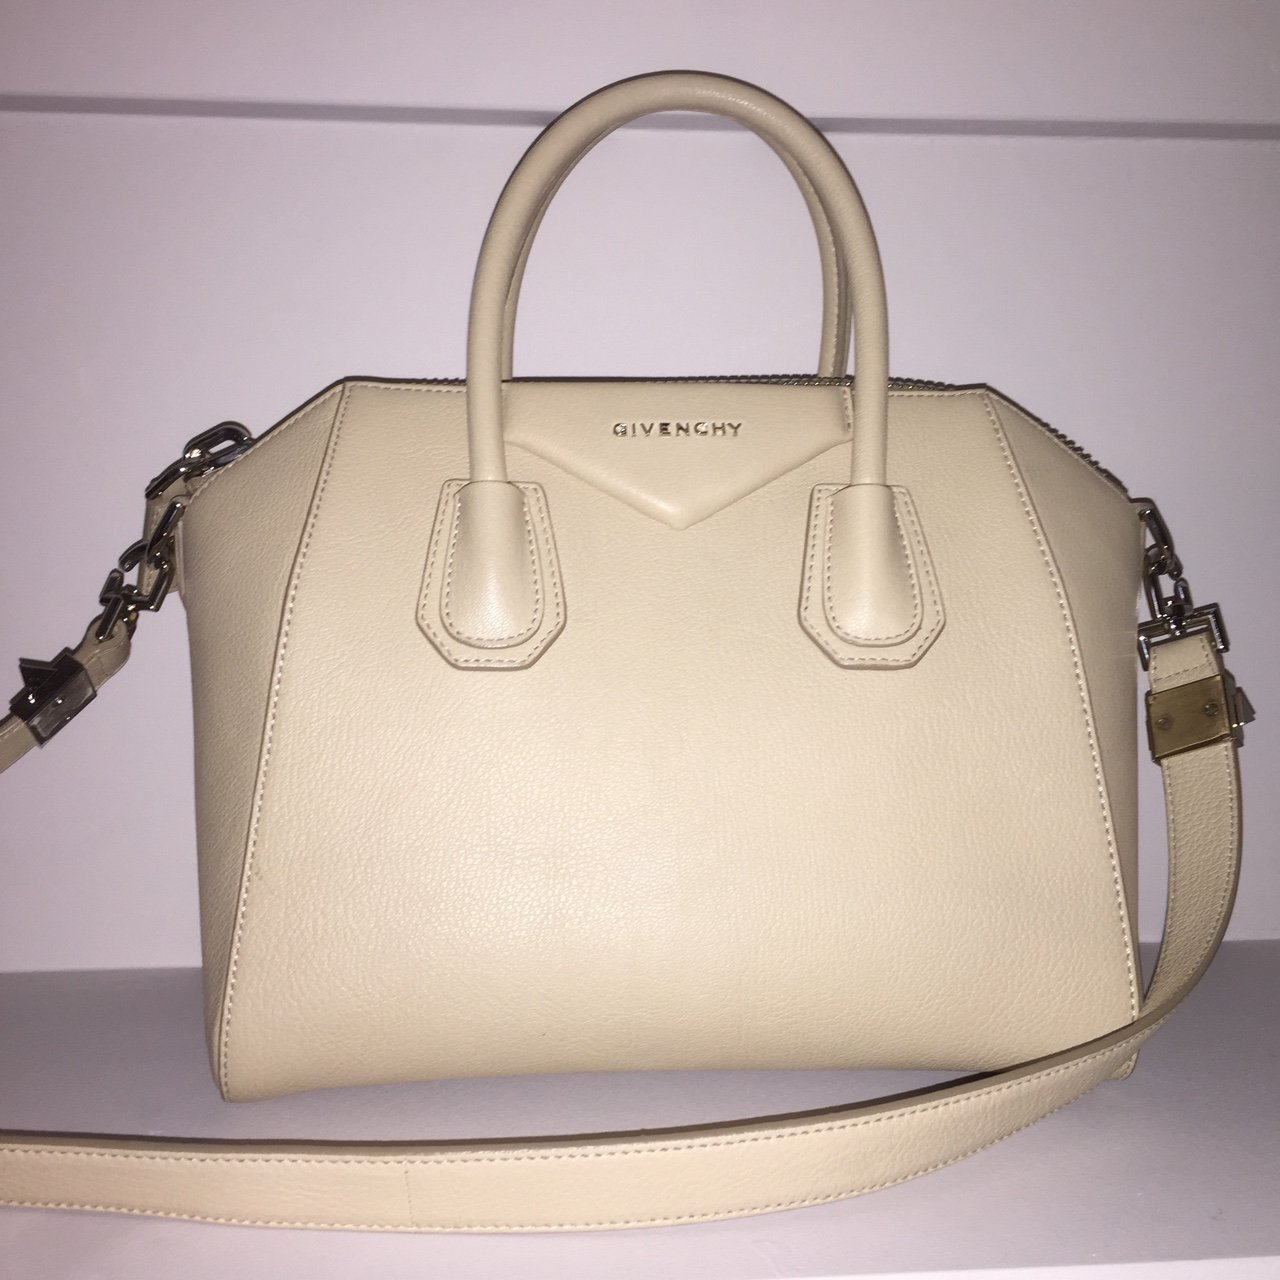 88d87e87b0  soniaguedes. 2 years ago. Spain. Givenchy Antigona sugar small leather tote .